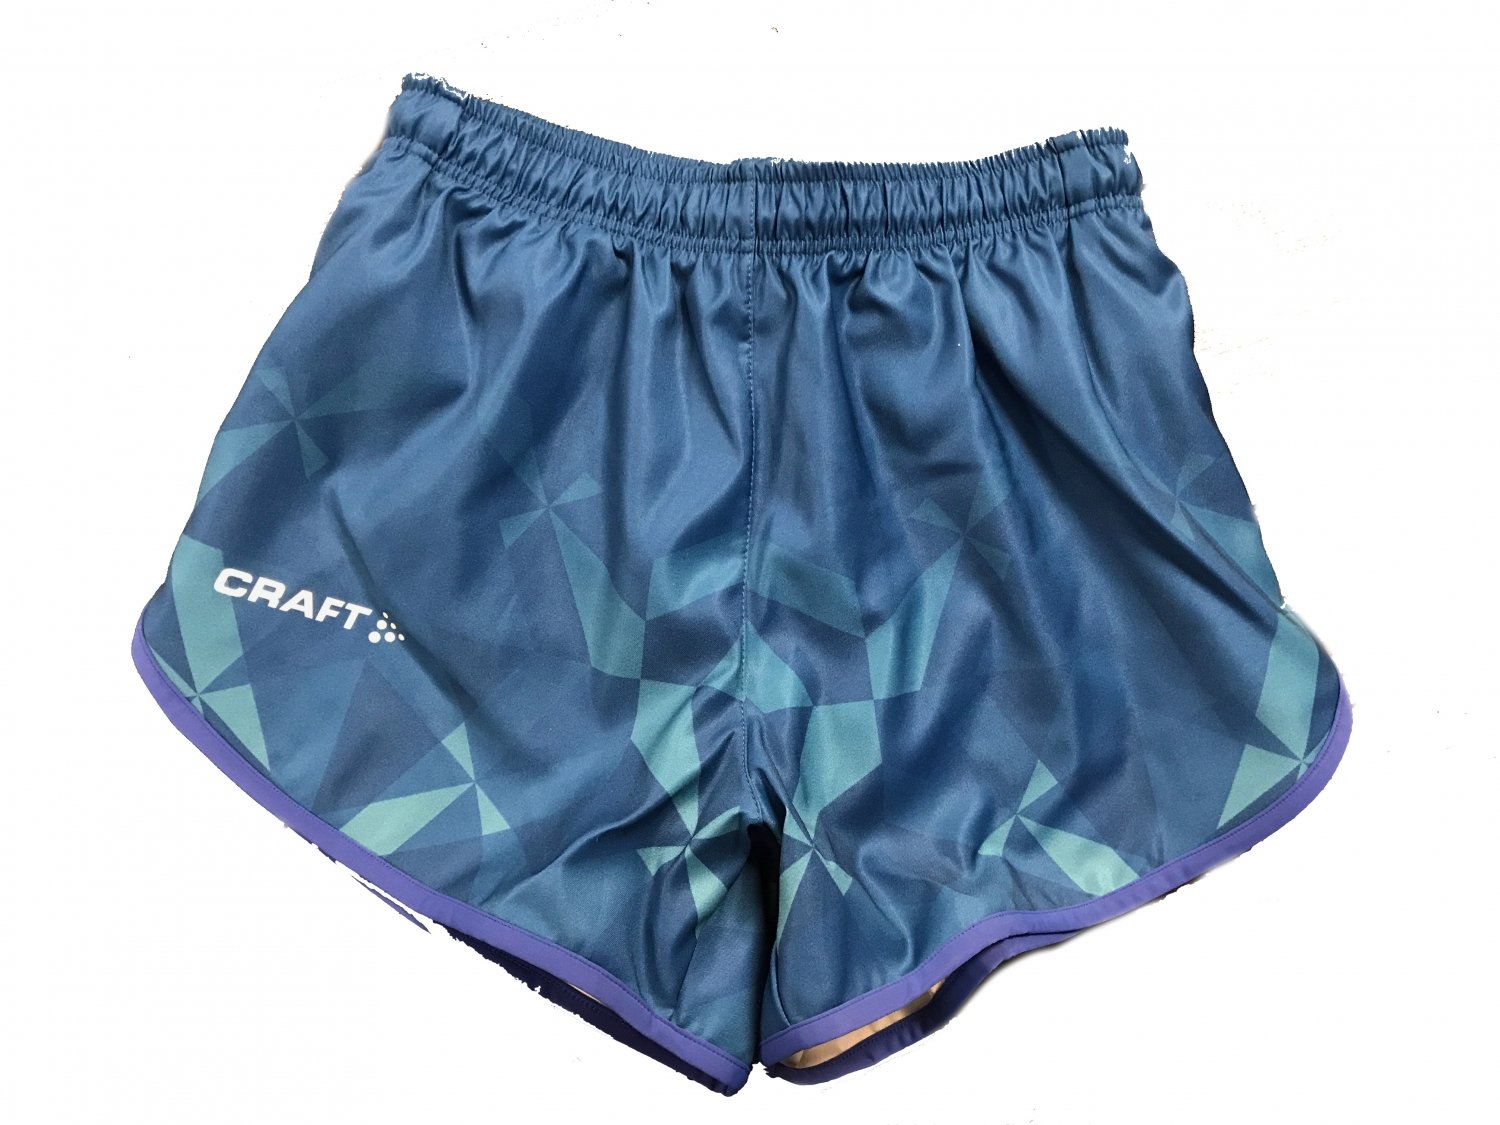 SMU Craft Woven Shorts dame